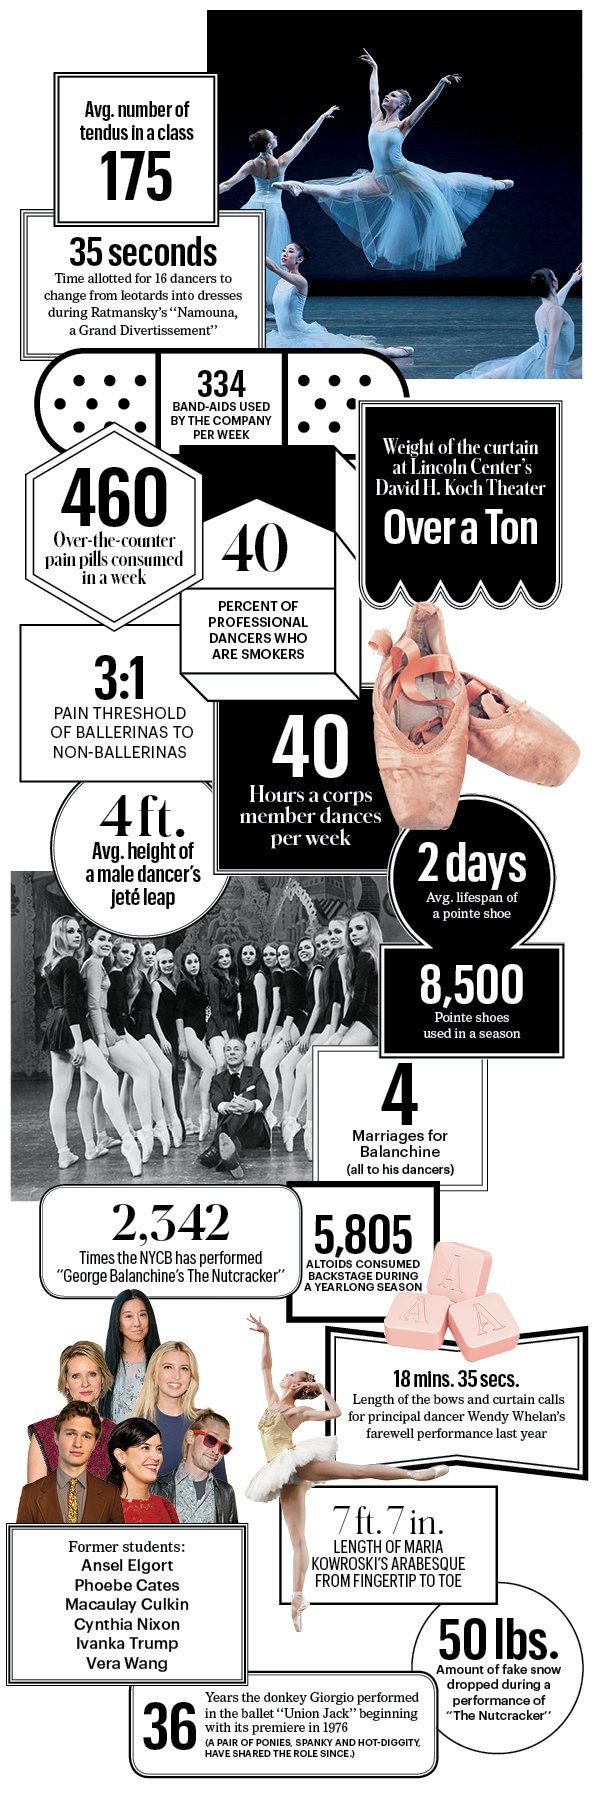 Awesome Ballet Infographic... Ansel Elgort took ballet? @jessiegriley Did you know that?